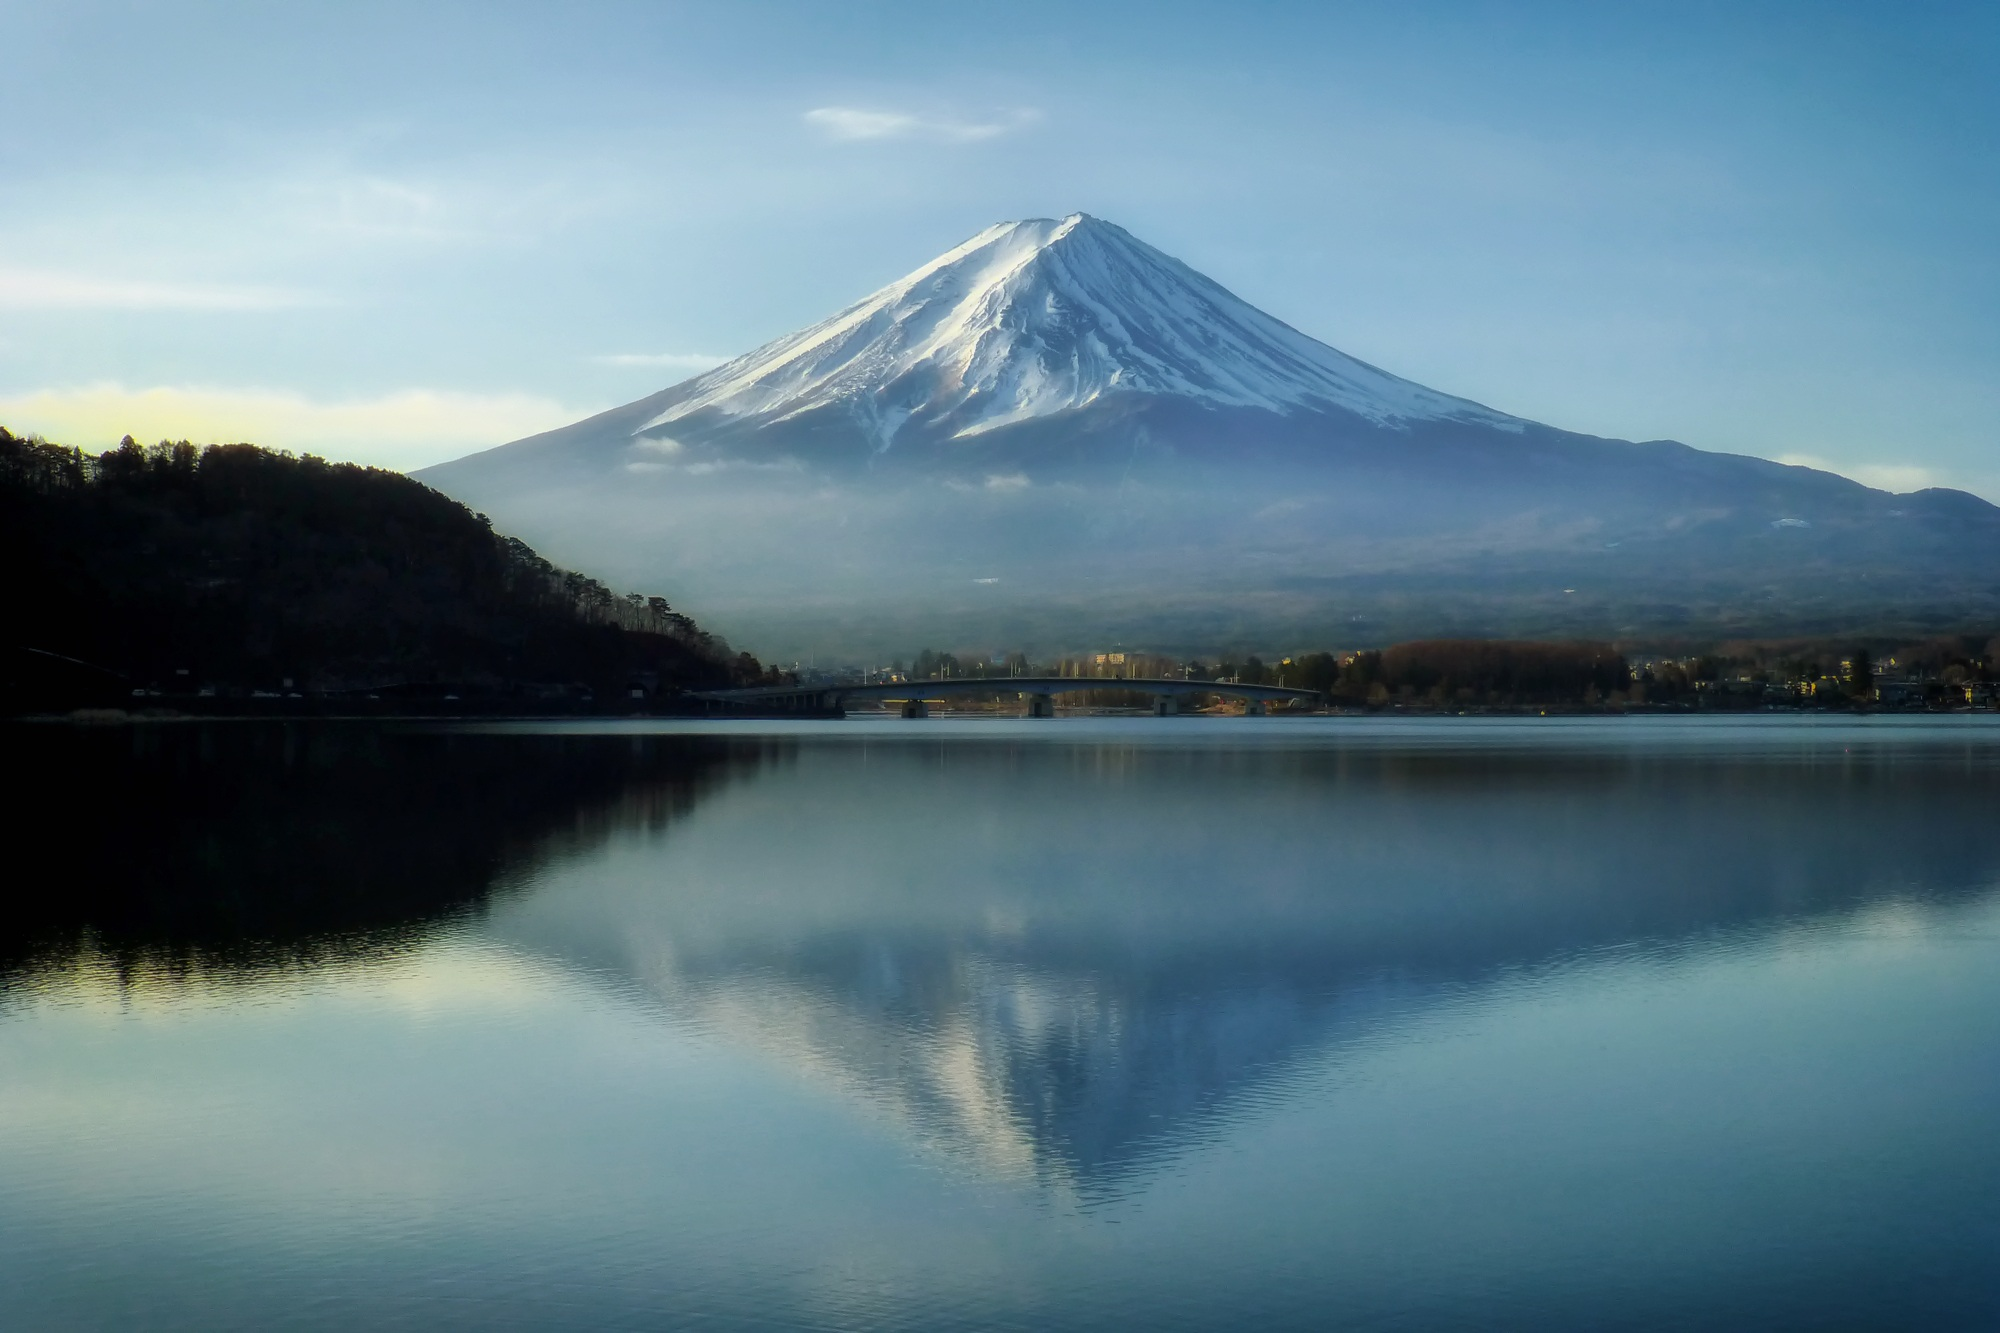 mount-fuji-japan-mountains-landmark_PD